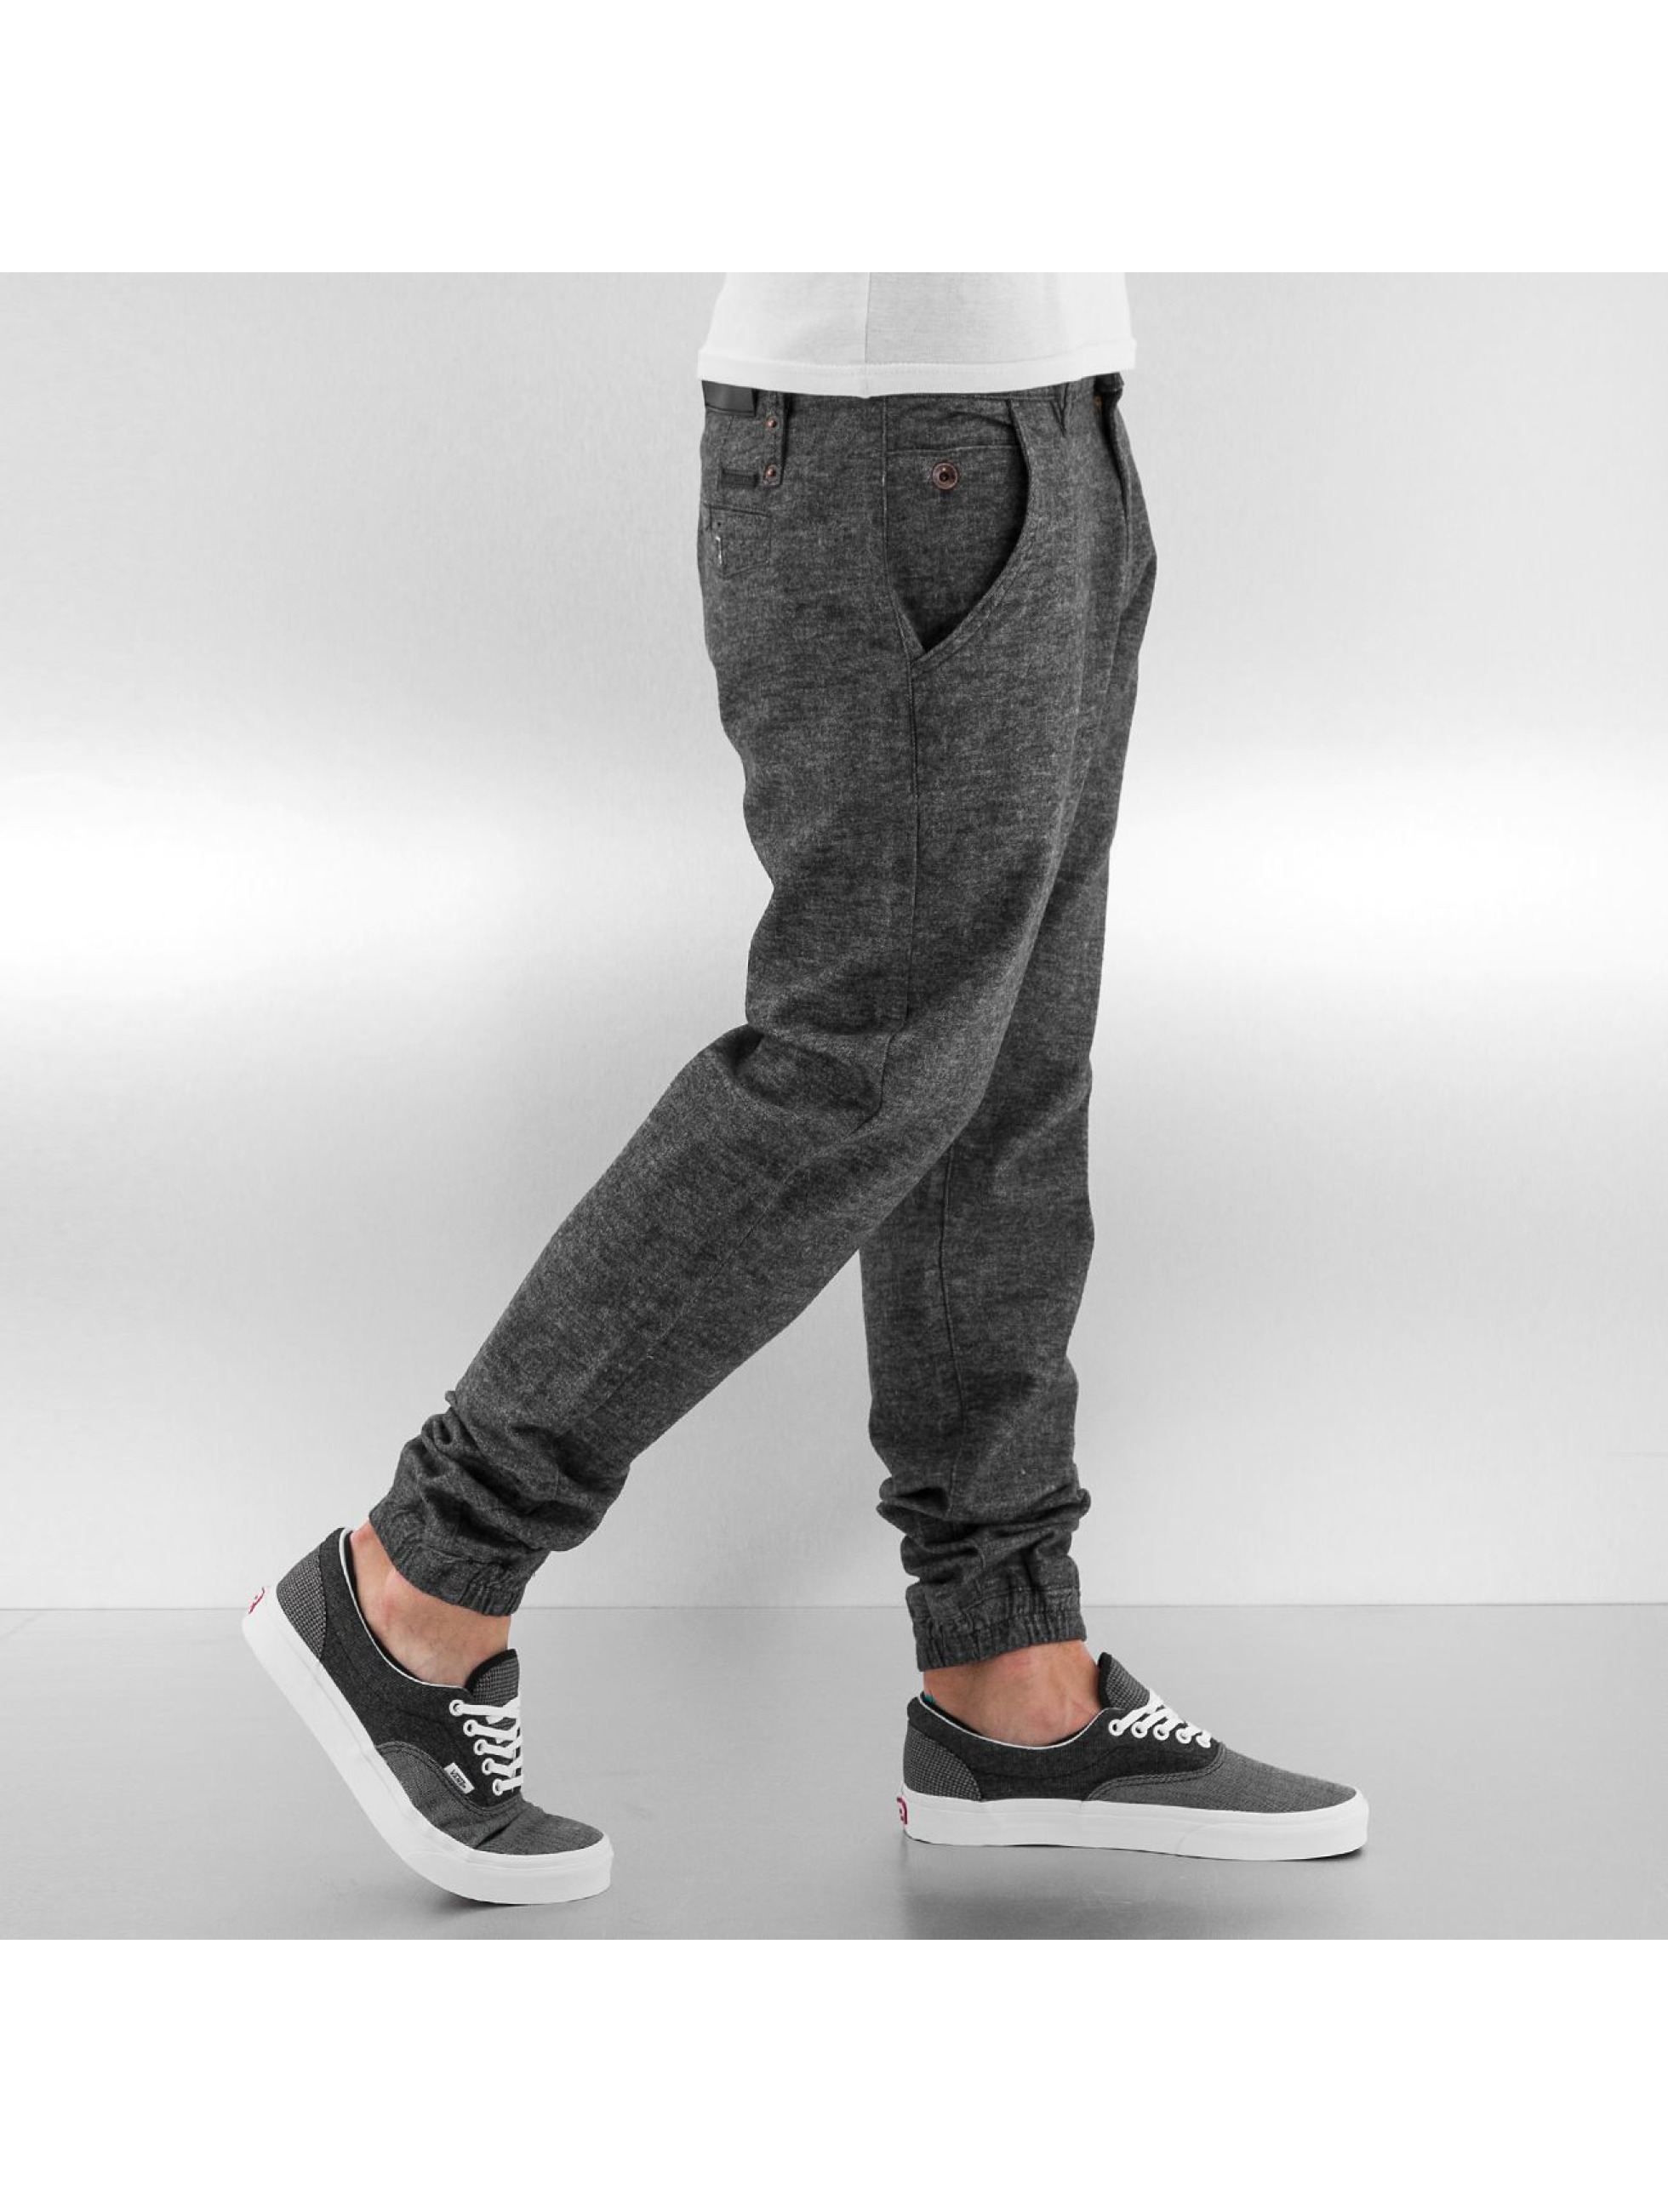 Rocawear Chino Non Denim Jogger Fit grijs